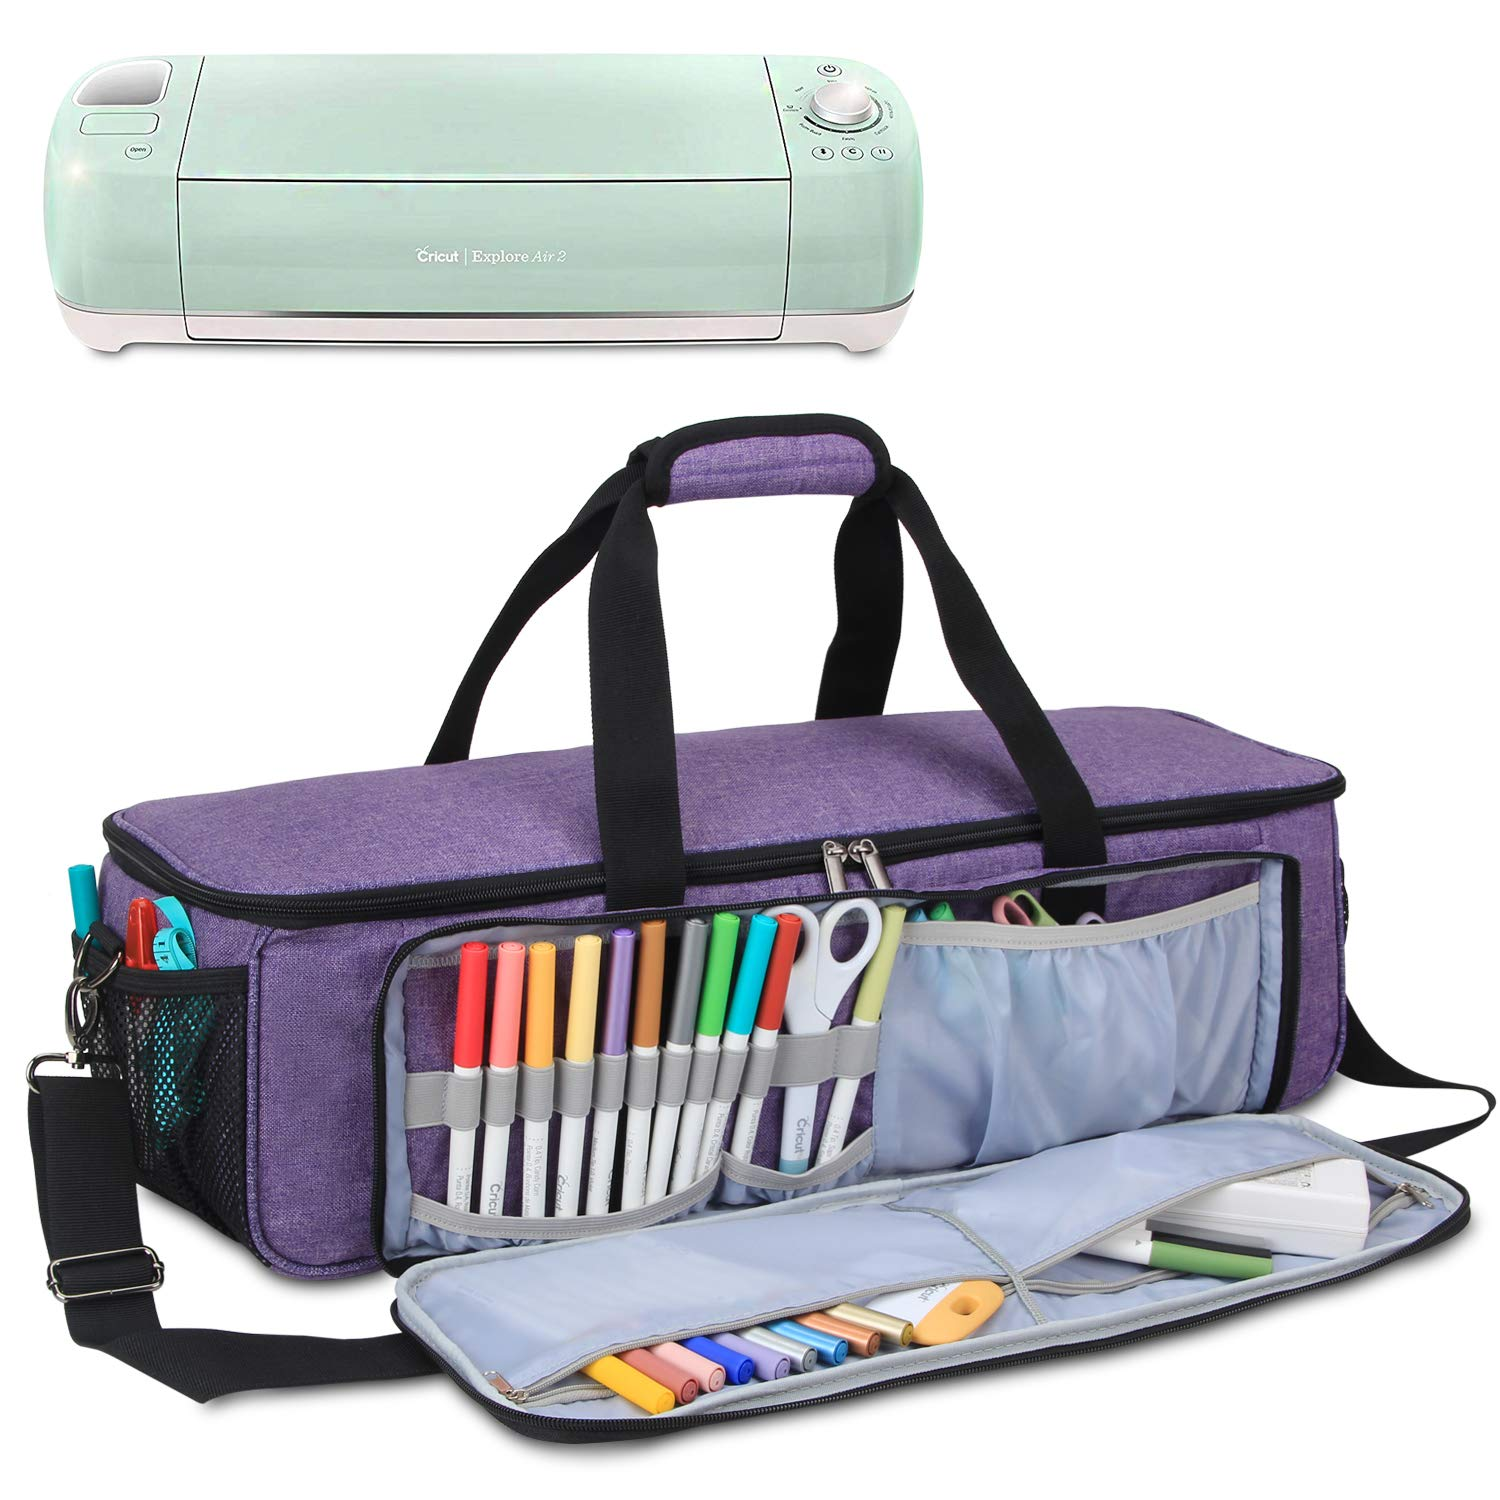 Yarwo Carrying Bag for Cricut Explore Air (Air 2), Cricut Maker Silhouette Cameo 3, Tote Bag Heavy Duty Nylon Travel Bag Compatible with Cricut Accessories Supplies, Bag Only, Purple